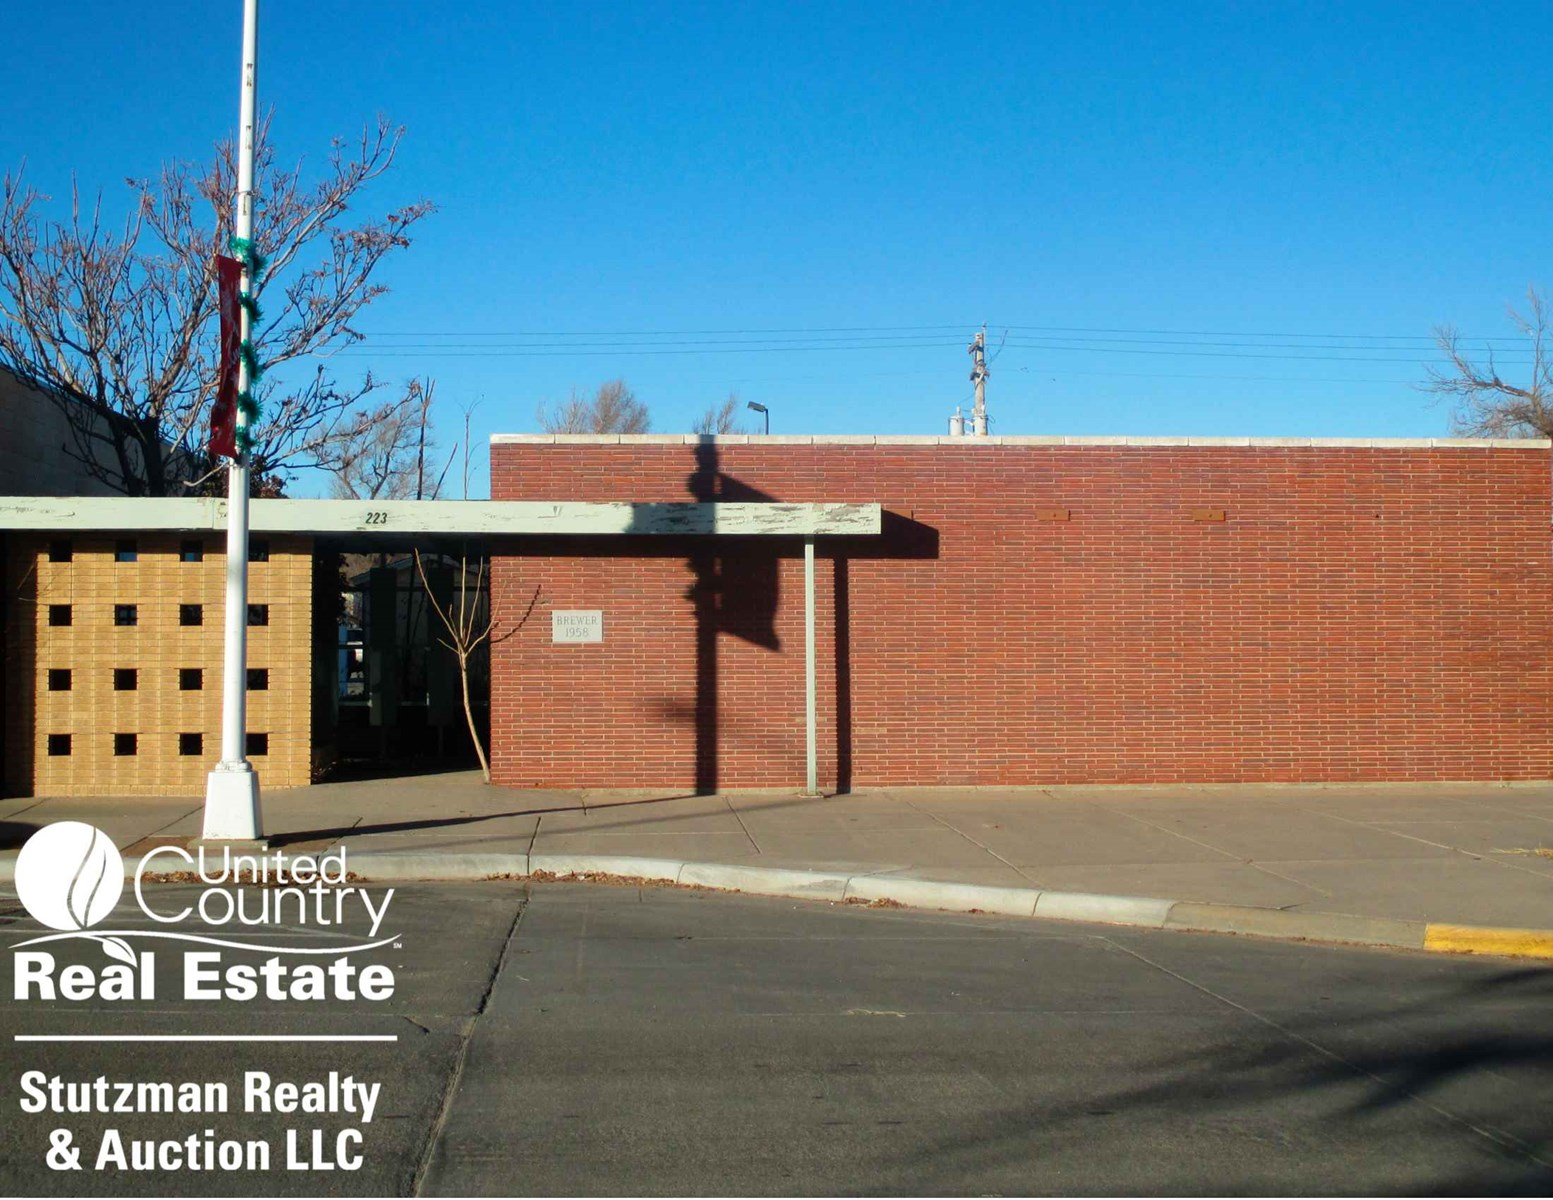 OFFICE BUILDING in ULYSSES, KS - SELLING BY PRIVATE AUCTION